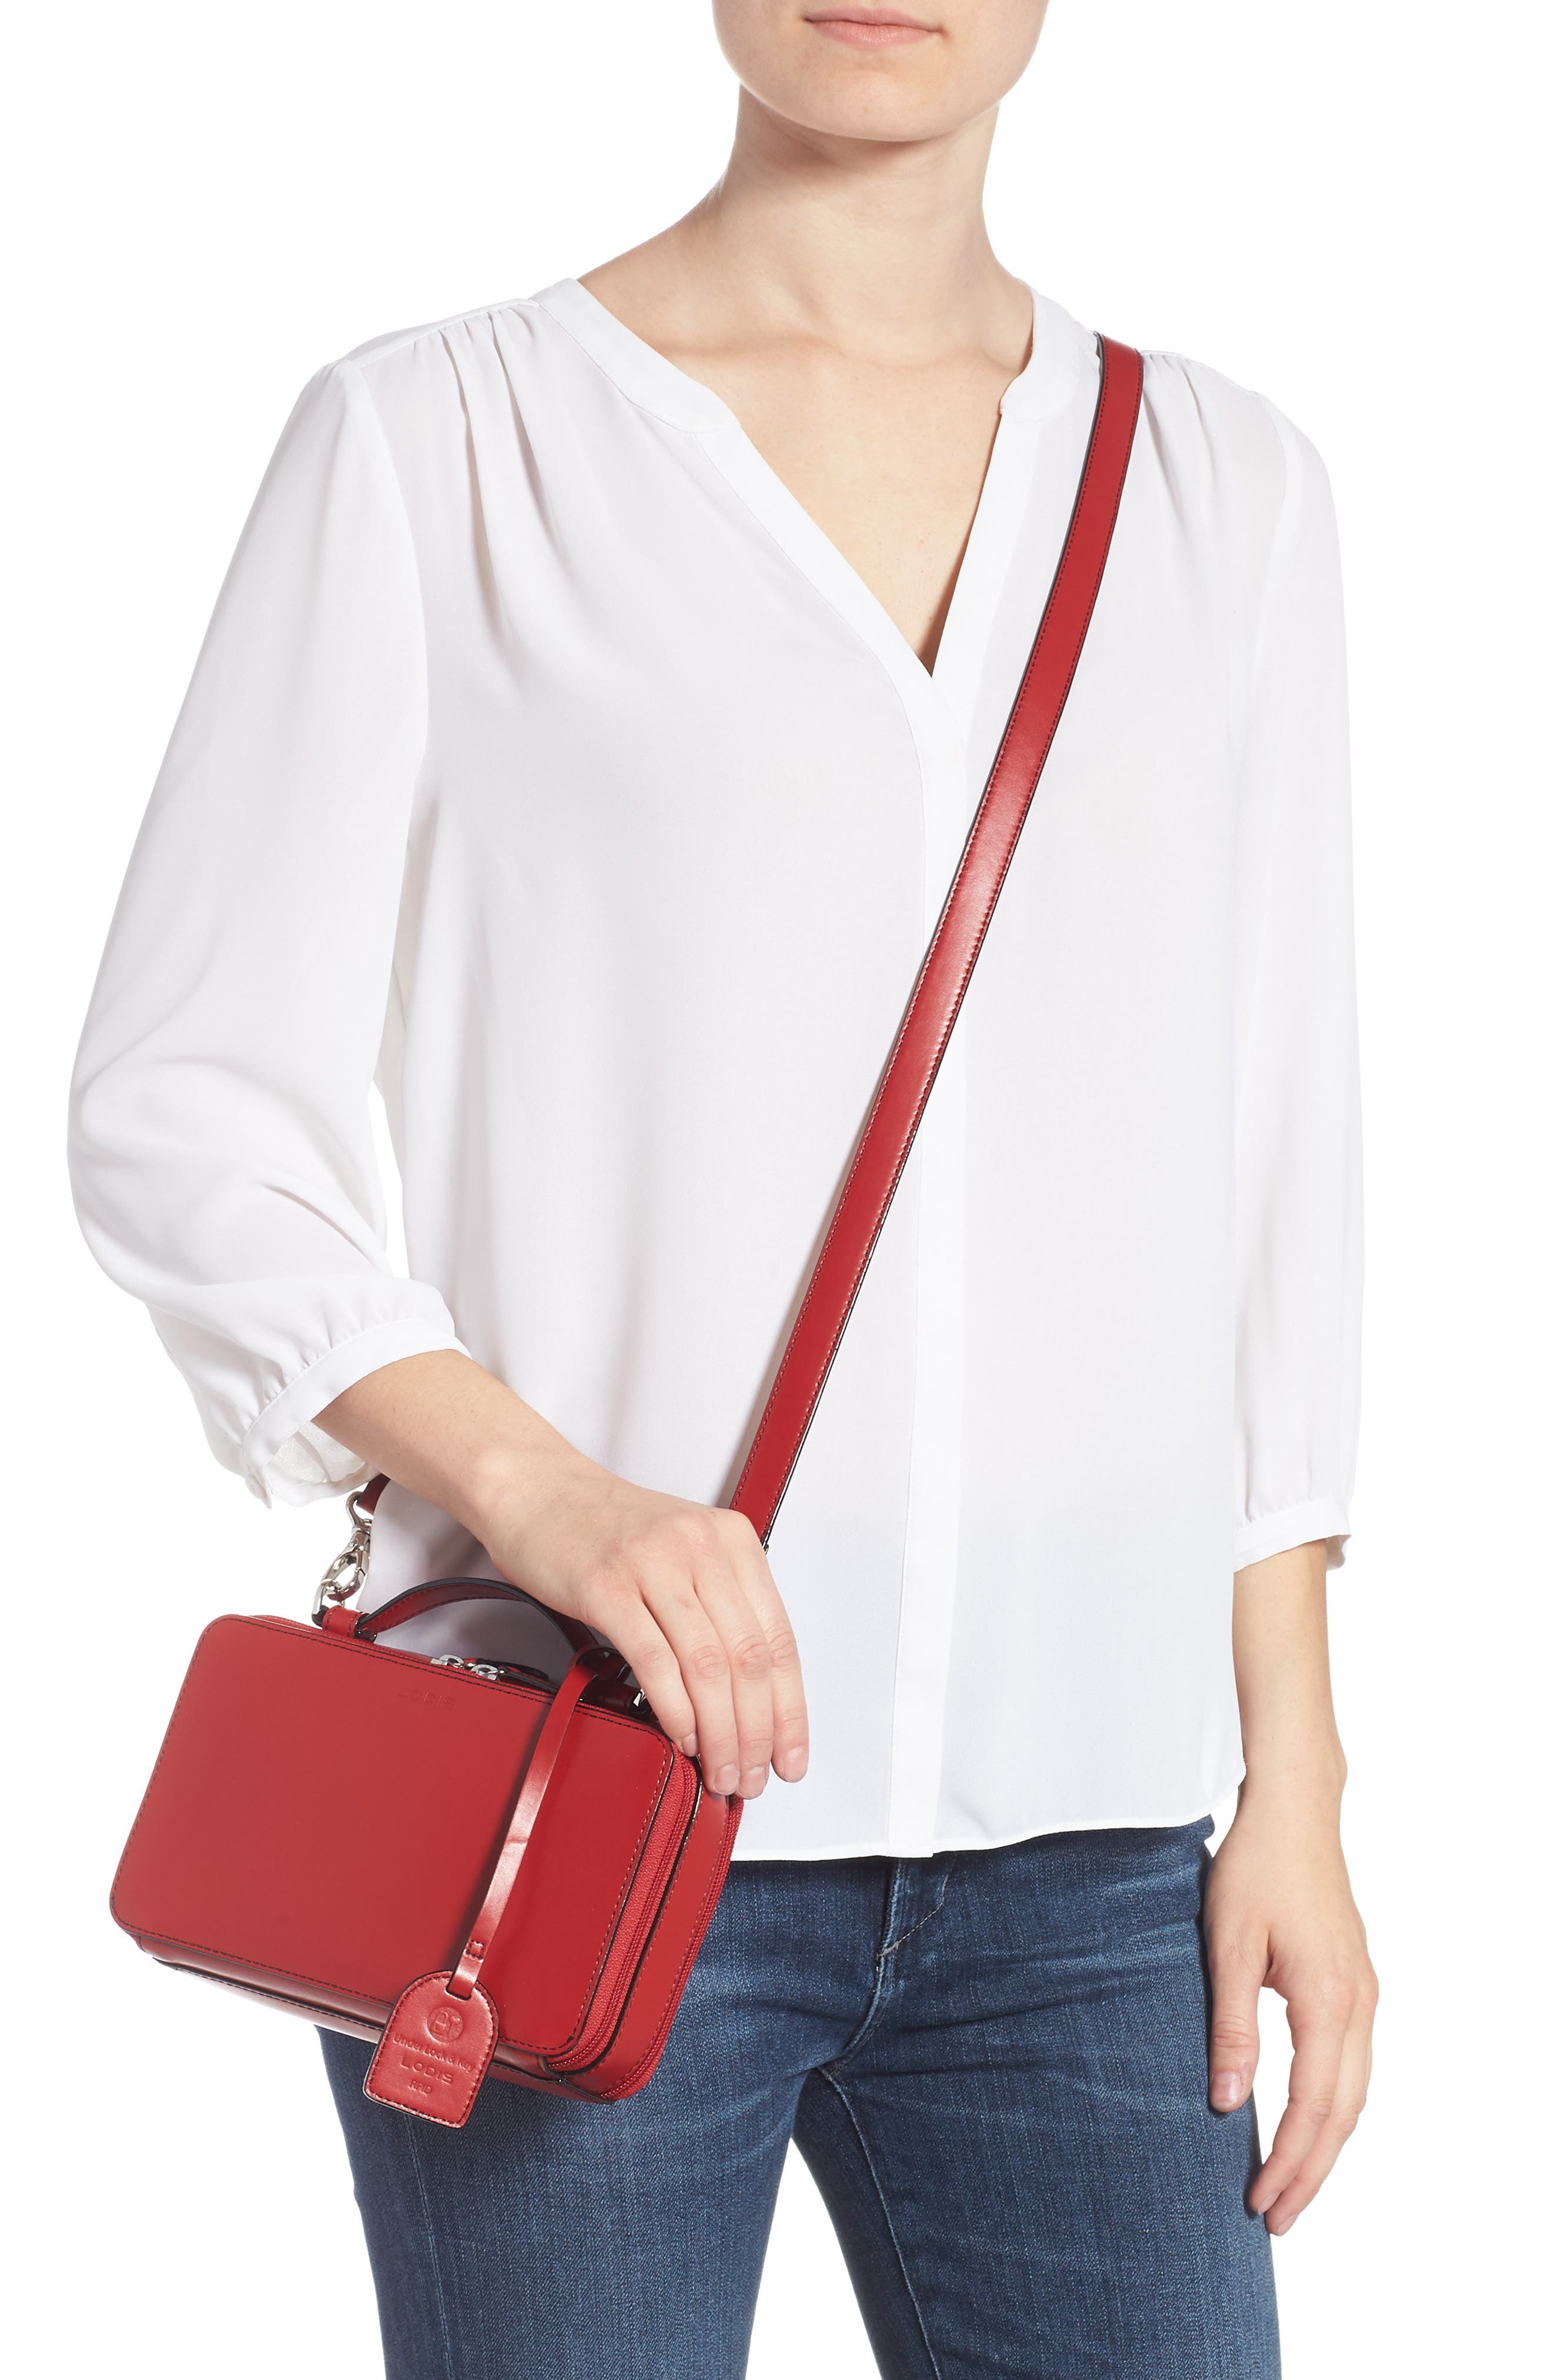 Downtown Sally RFID Zip-Around Leather Crossbody Bag,                             Alternate thumbnail 2, color,                             RED